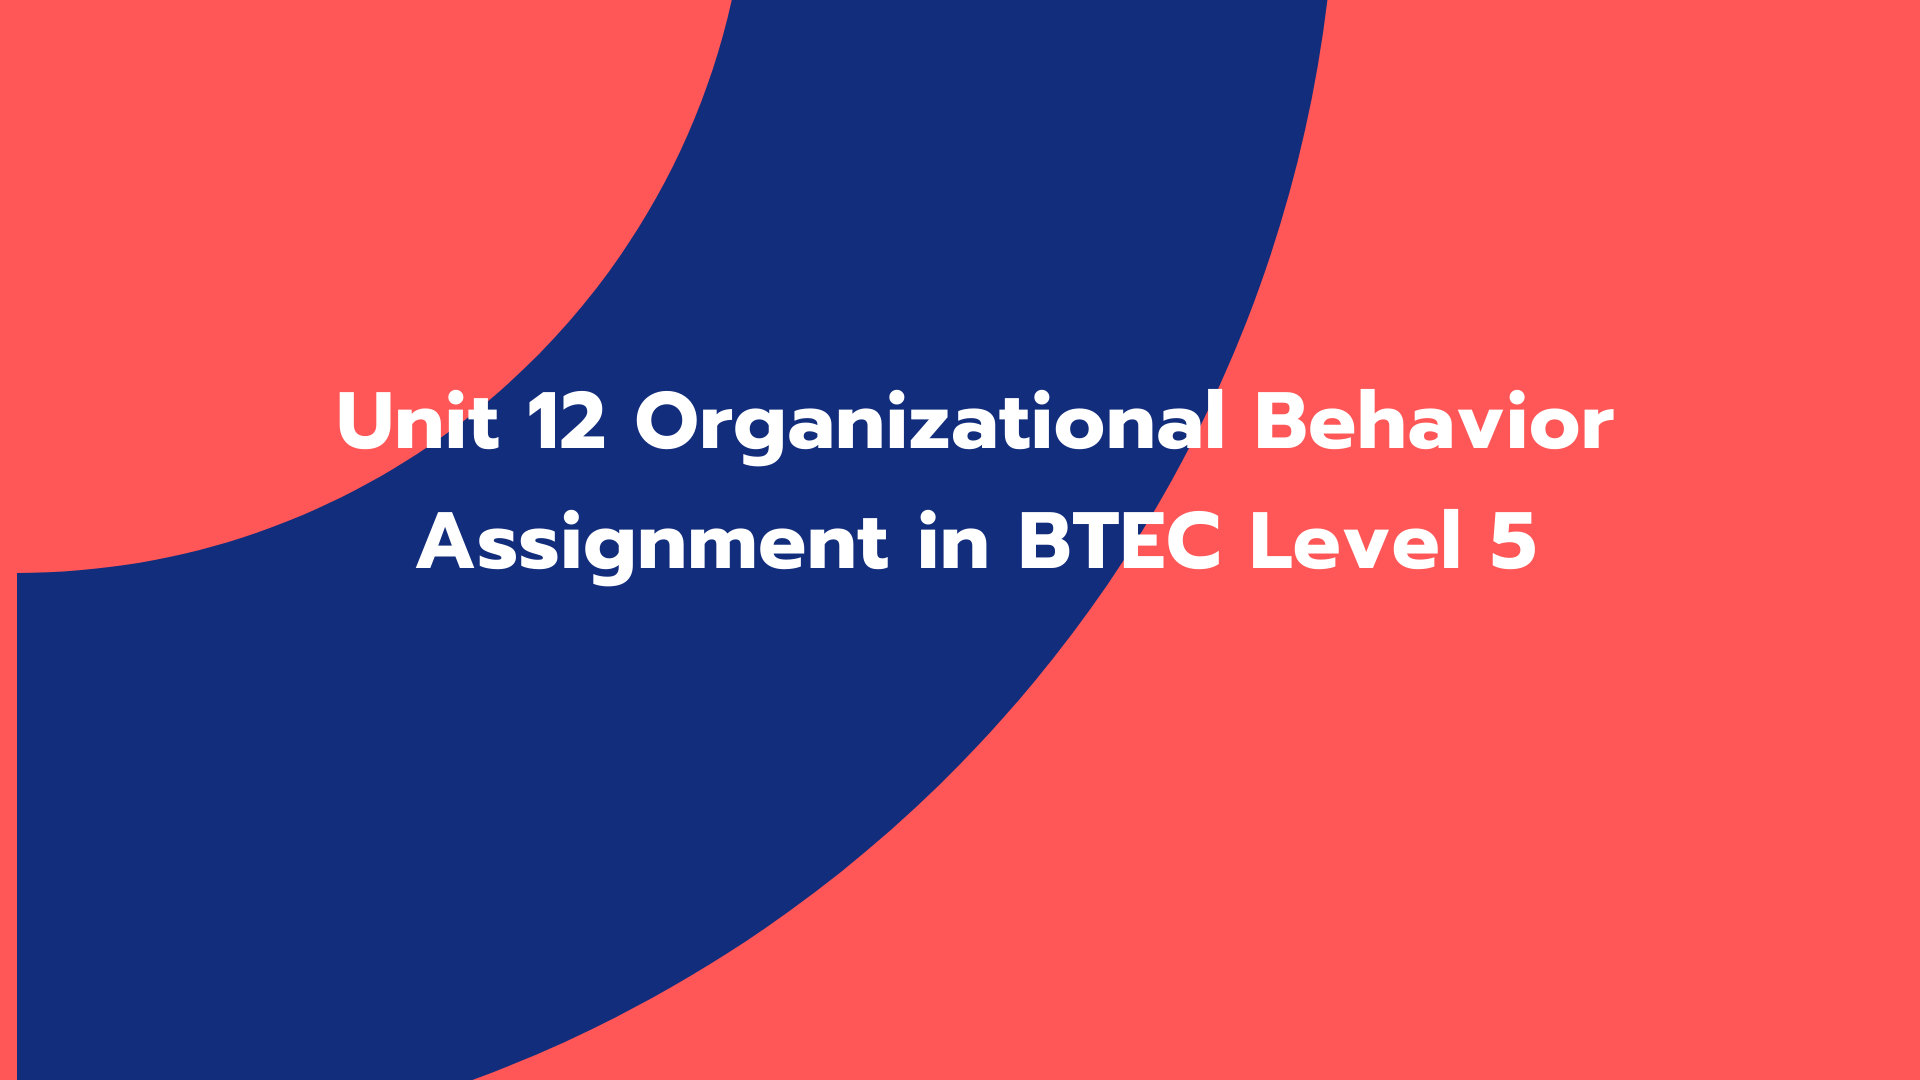 Unit 12 Organizational Behavior Assignment in BTEC Level 5